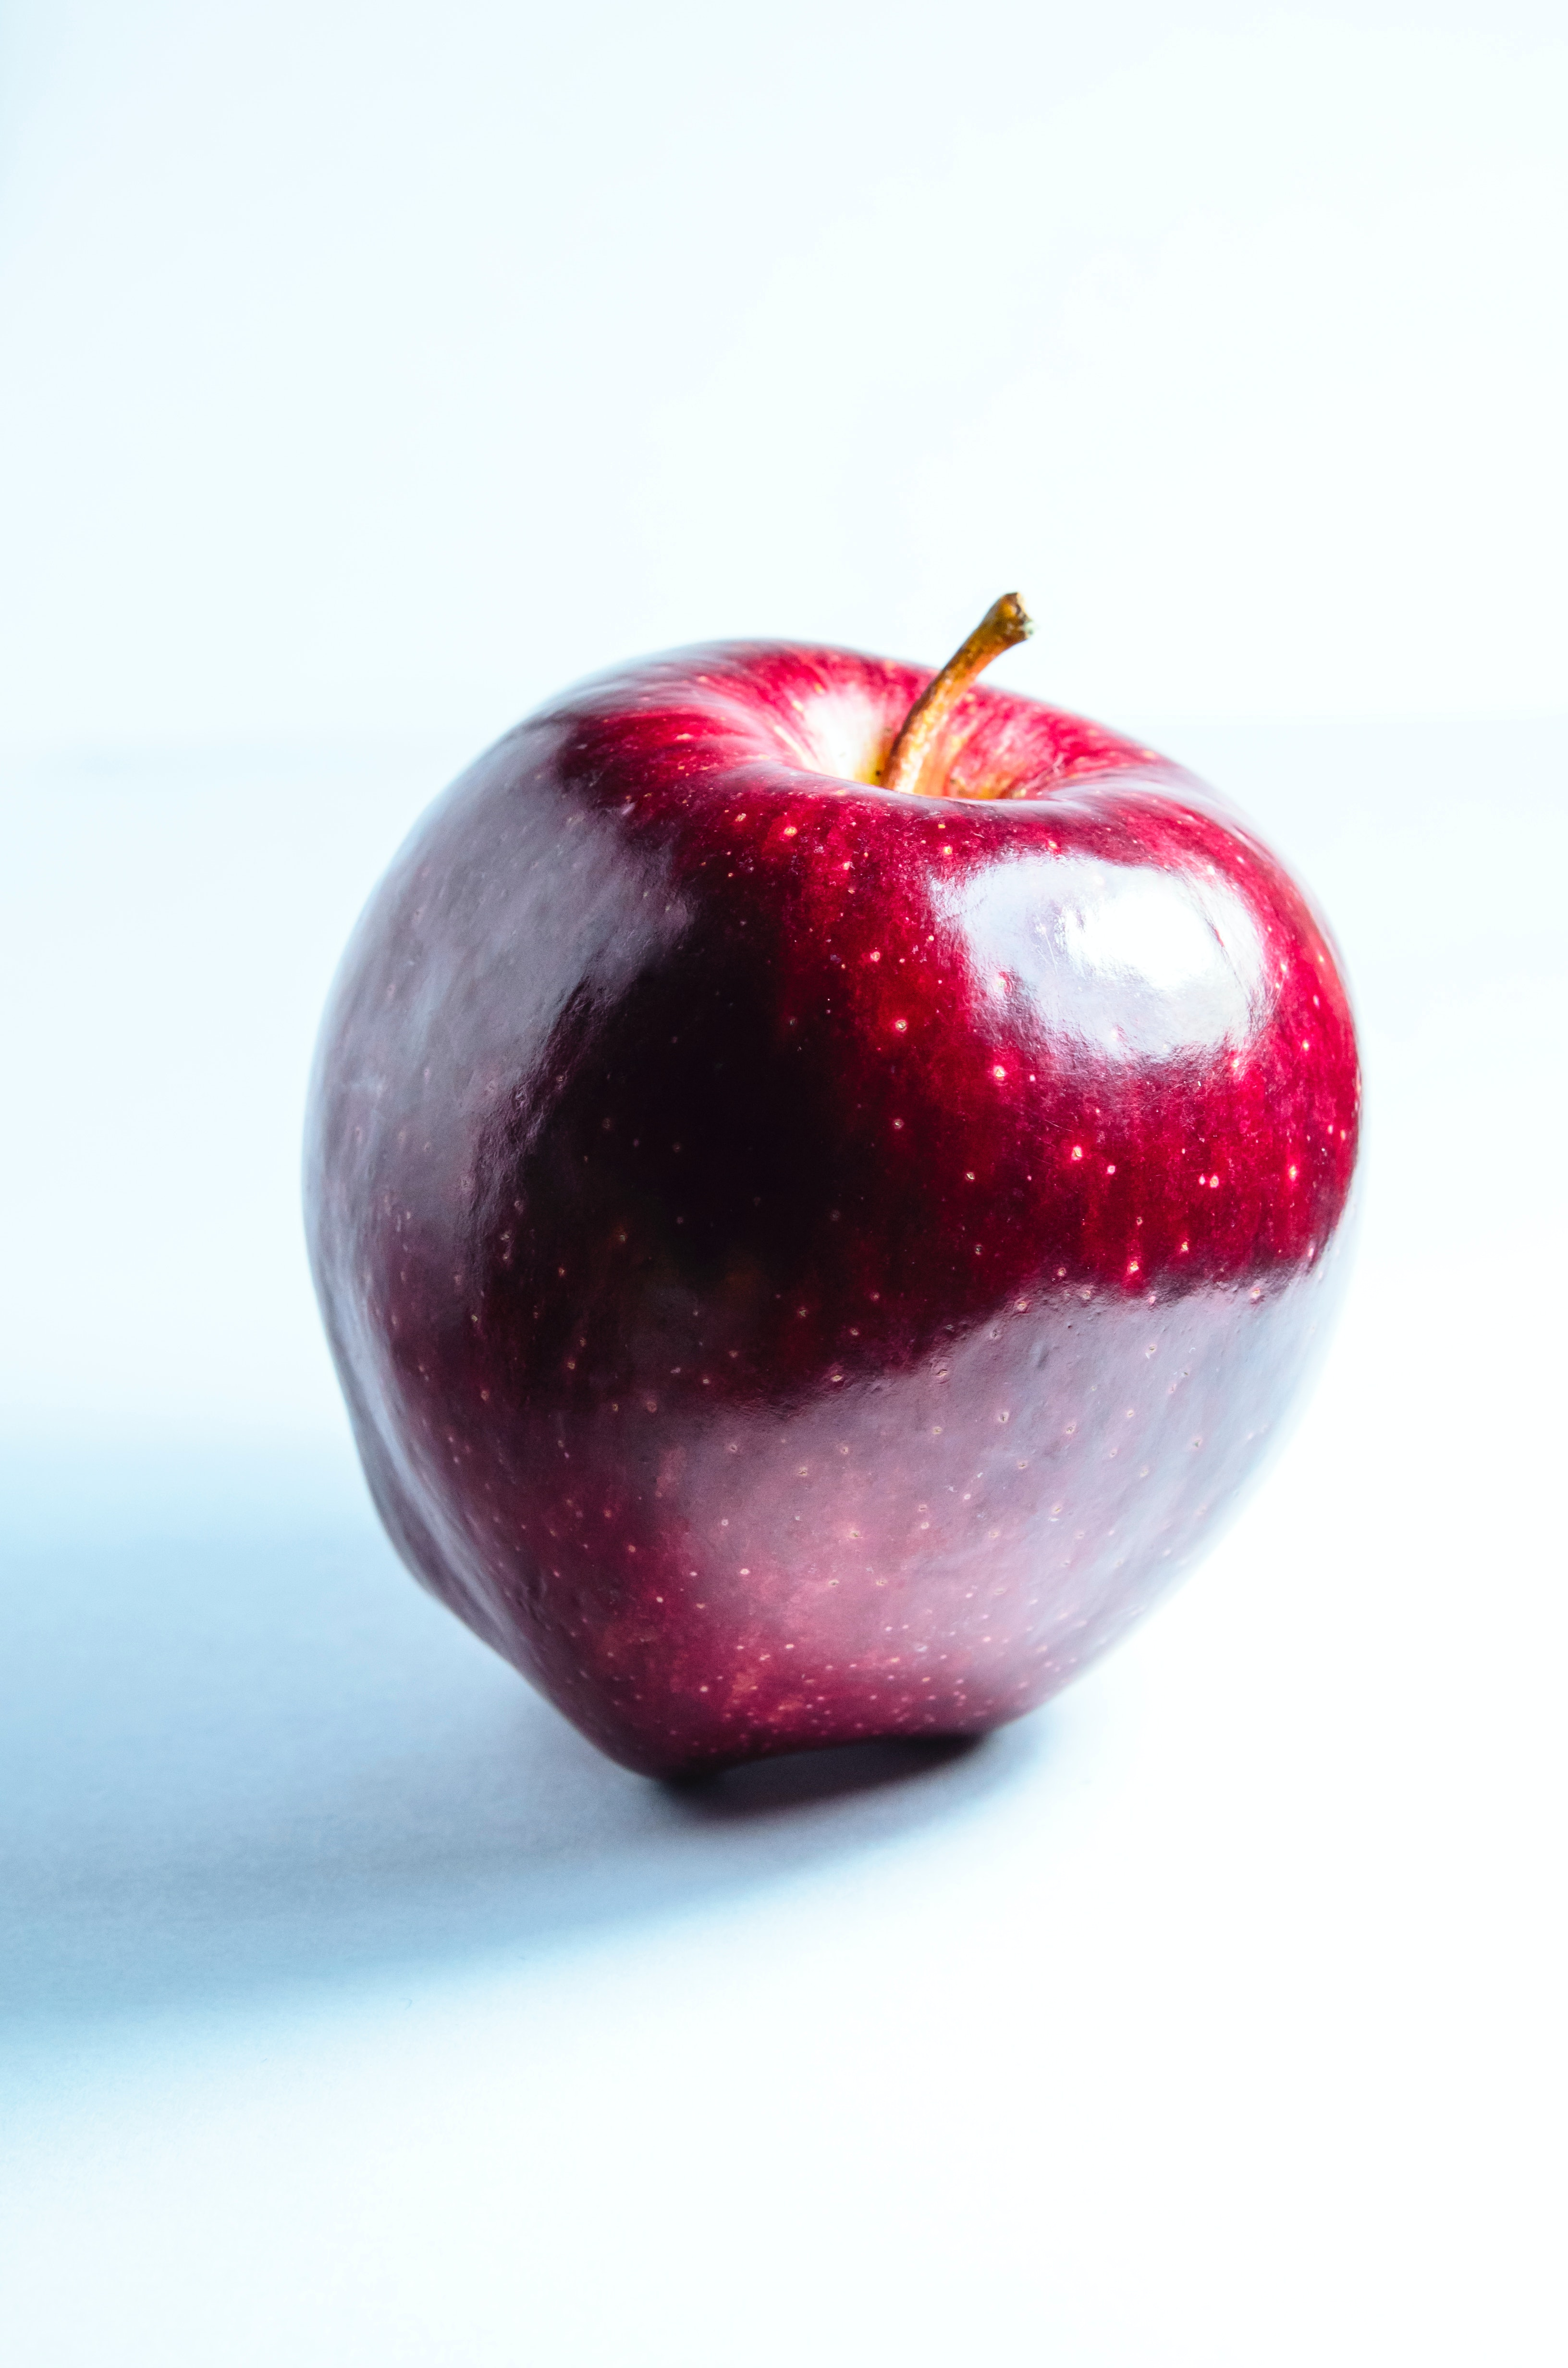 Red Apple Fruit Photography 183 Free Stock Photo